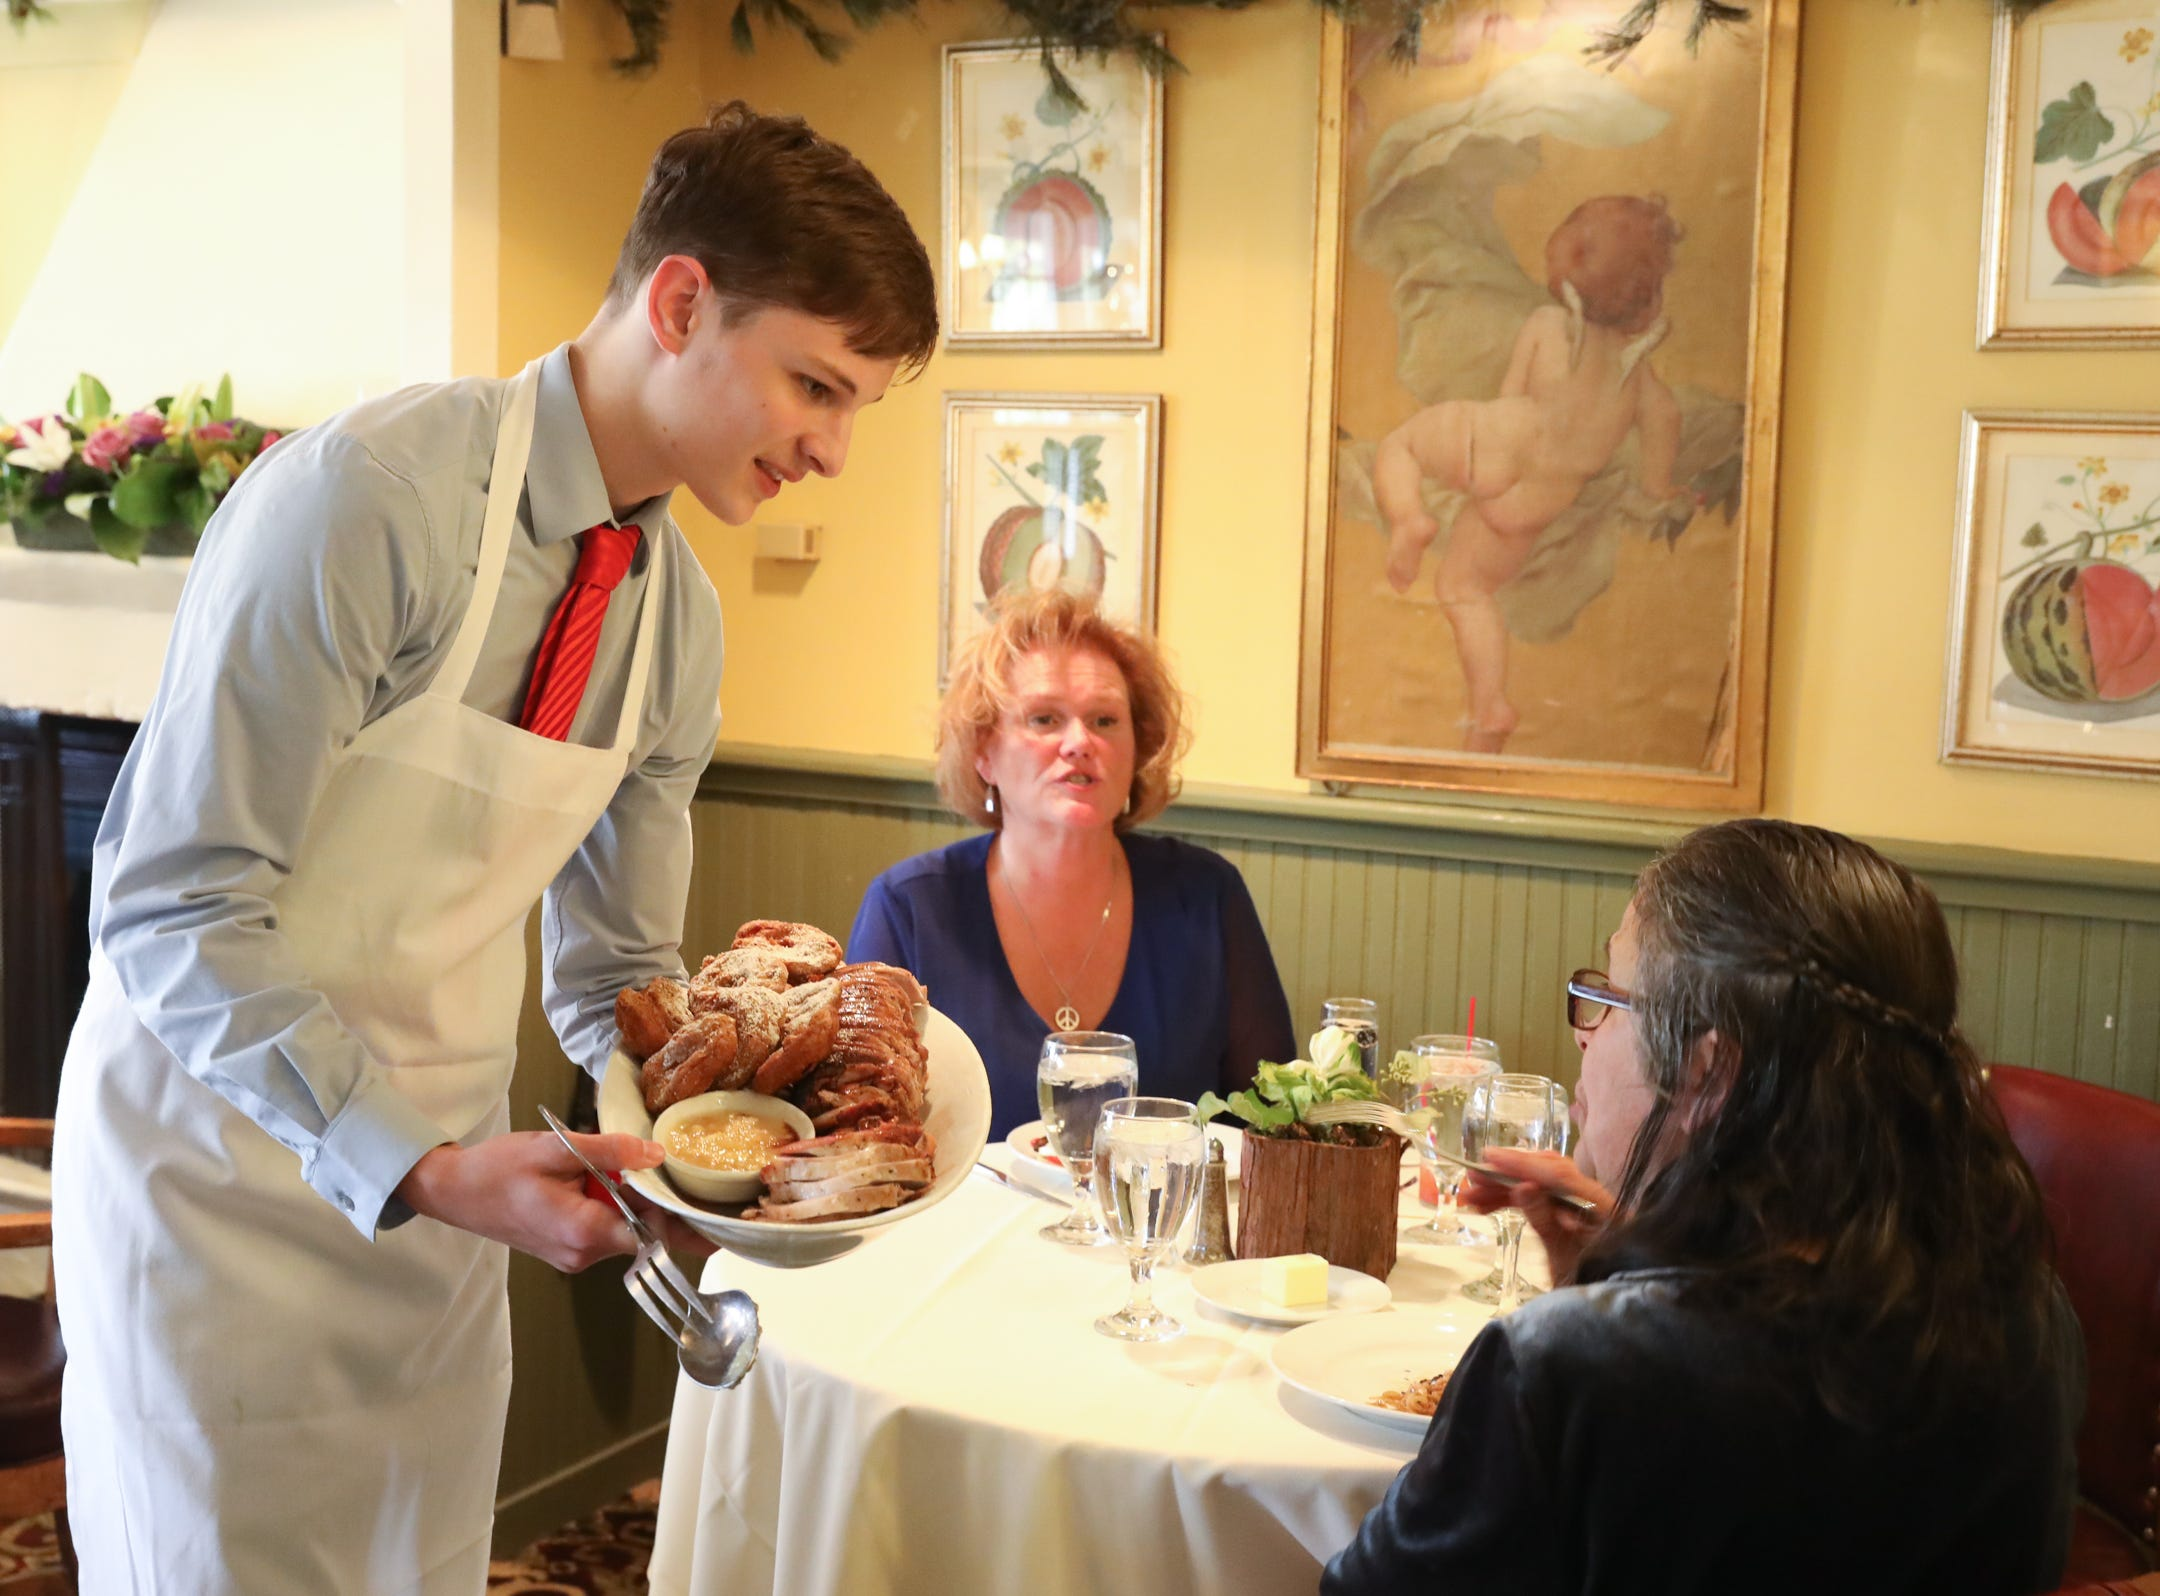 A server serves Roast Pork Tenderlion with Apple Sauce table side during Sunday brunch at Restaurant X in Congers on Sunday, January 6, 2019.